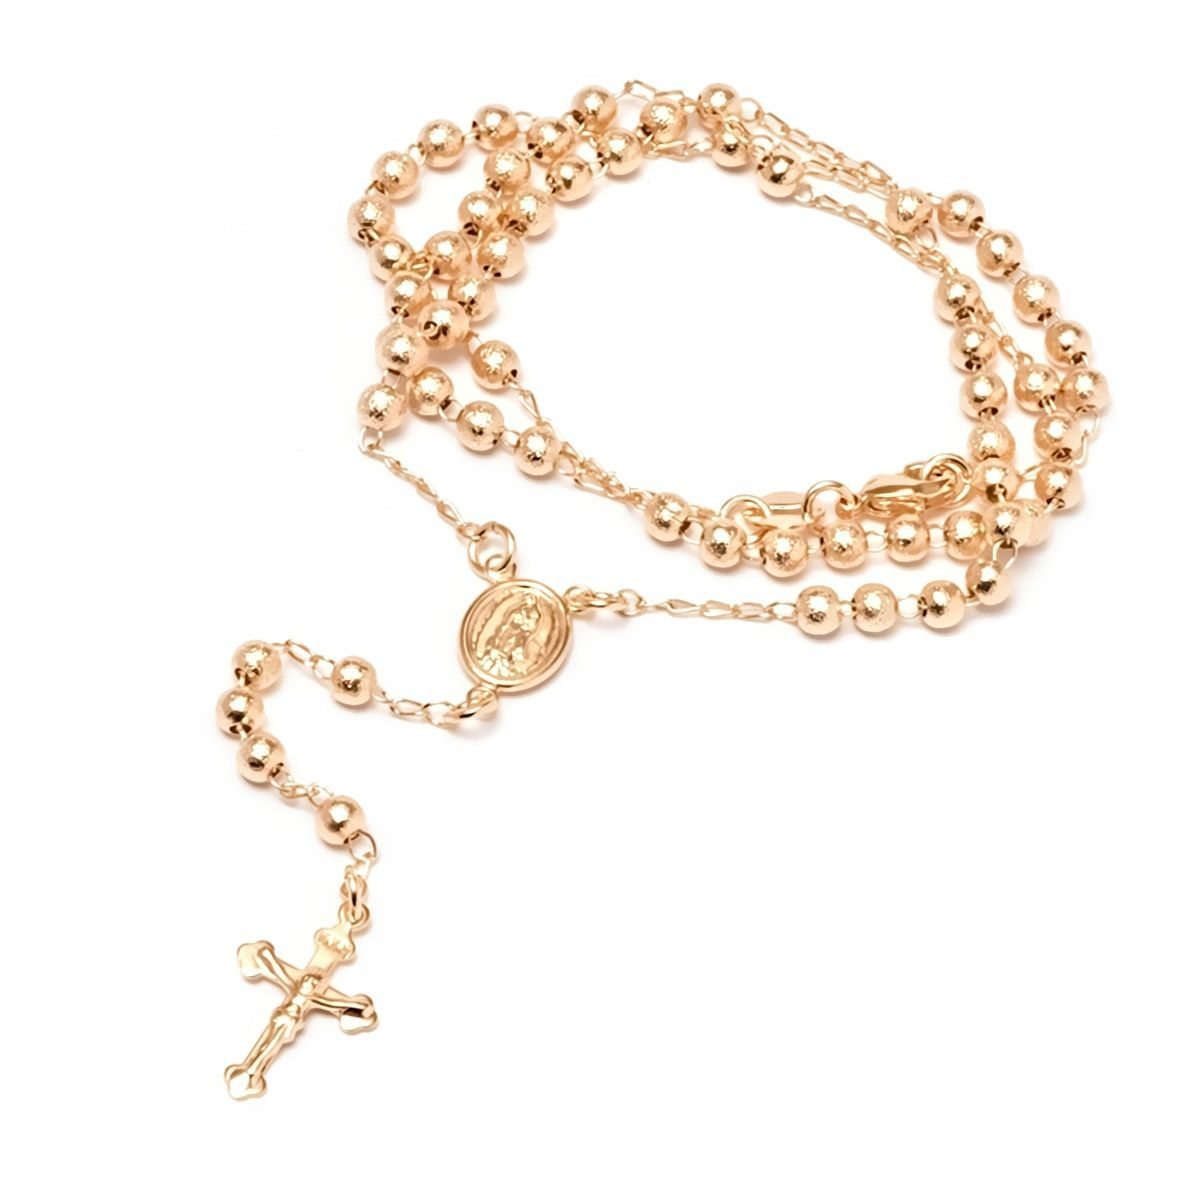 Peermont jewelry k yellow gold plated gold virgin mary rosary